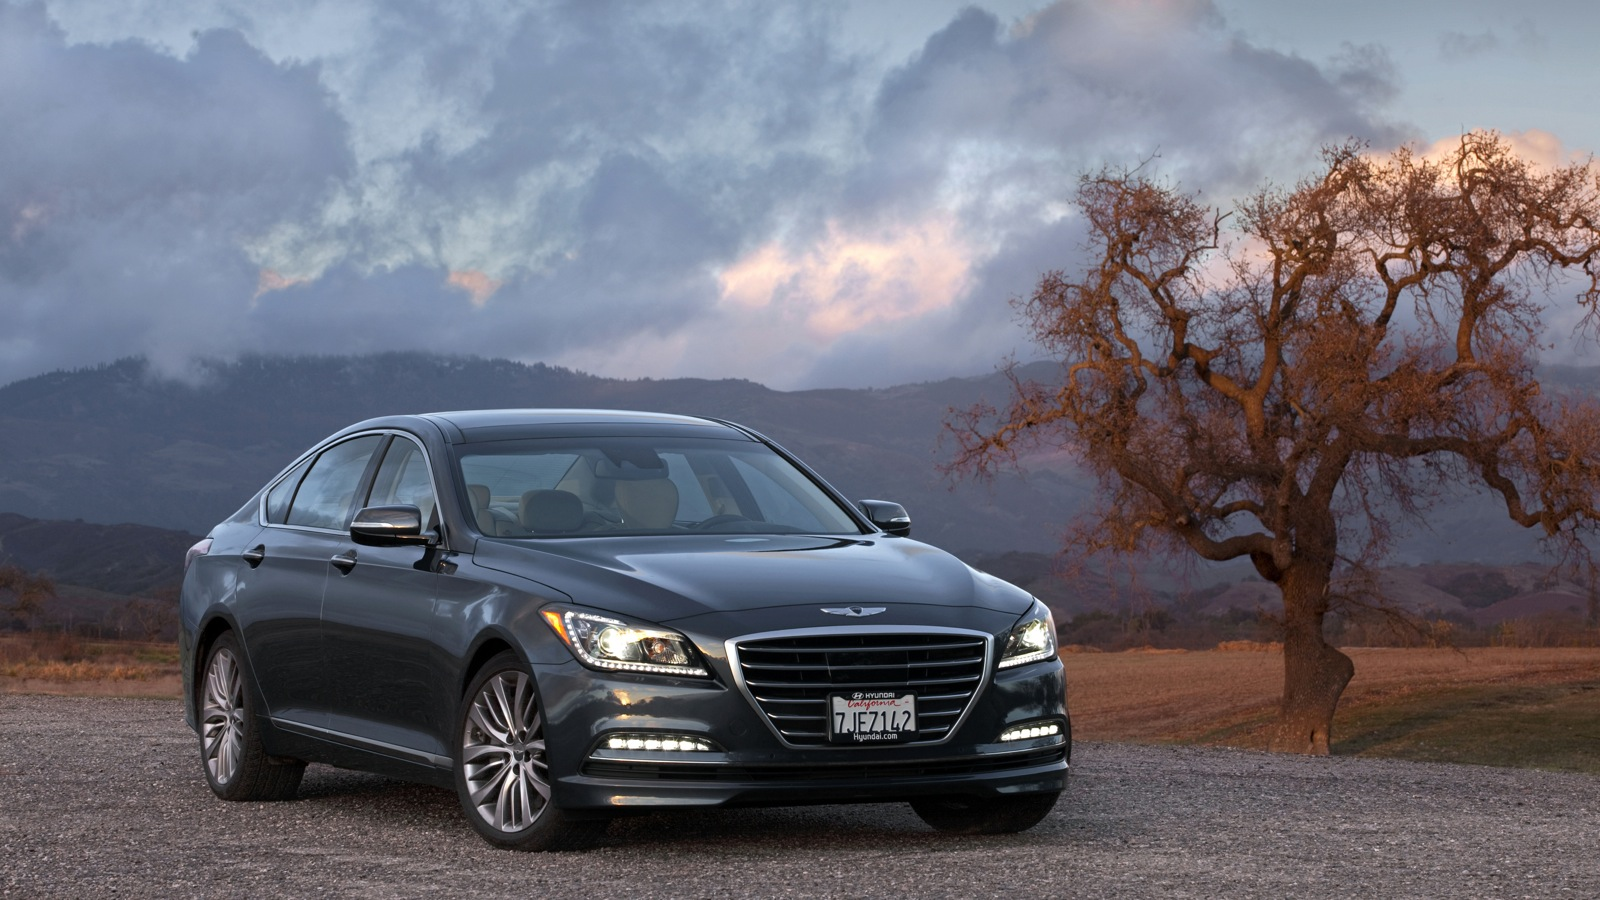 New 2016 Hyundai Genesis V8 Review  CarAdvice